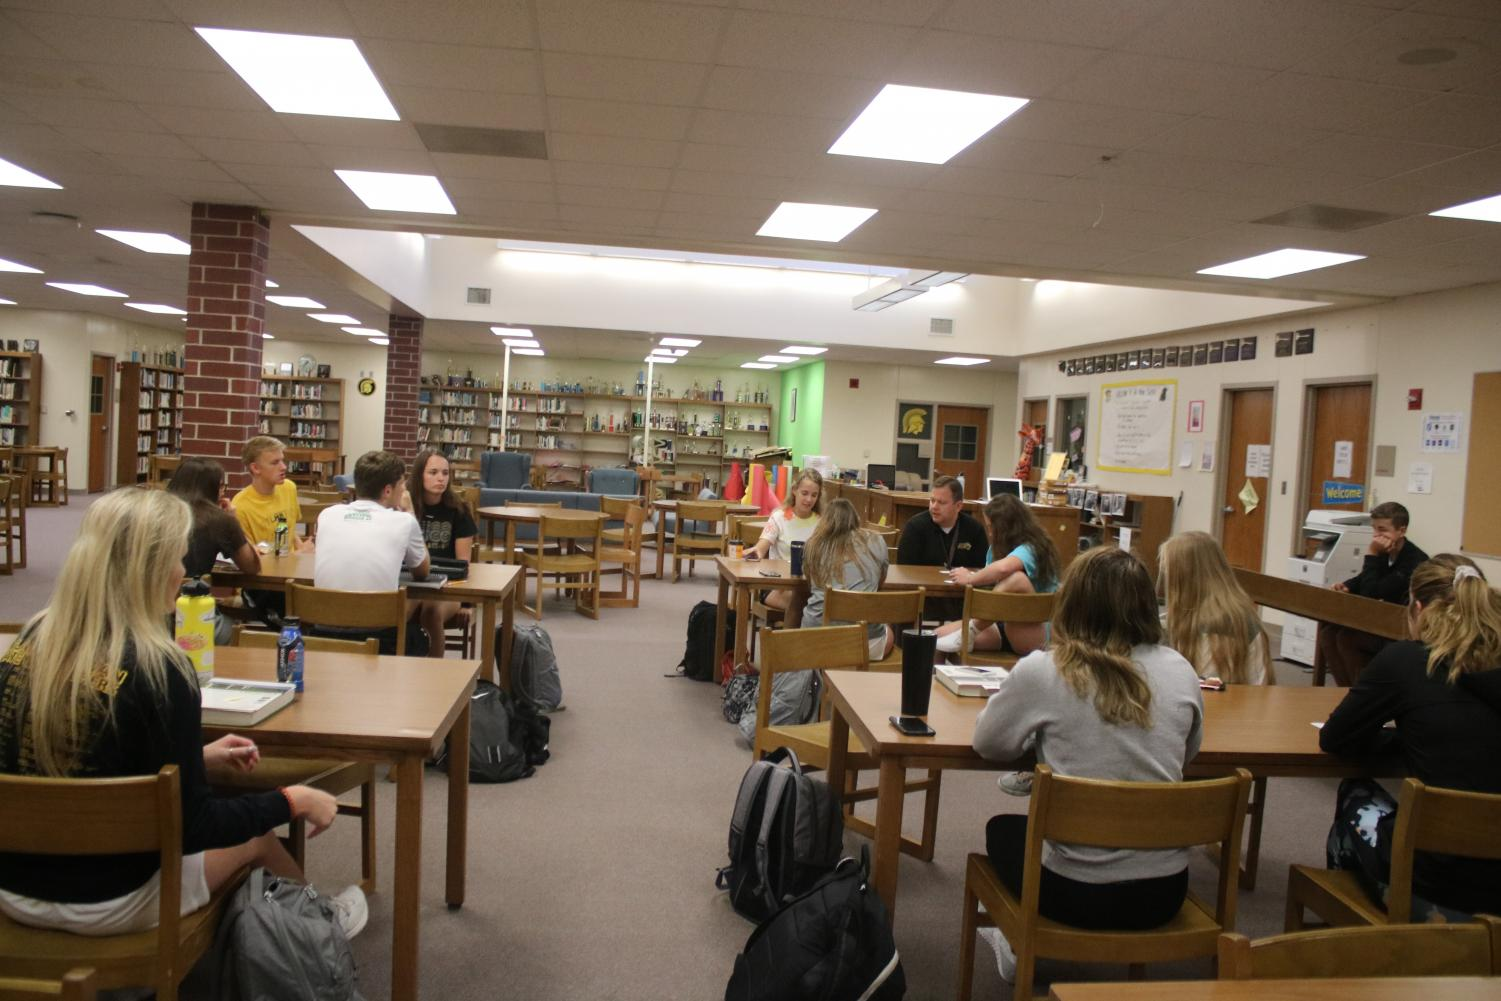 The NHS chapter meets early in the year. Juniors and seniors meet about once a month for NHS discussions.